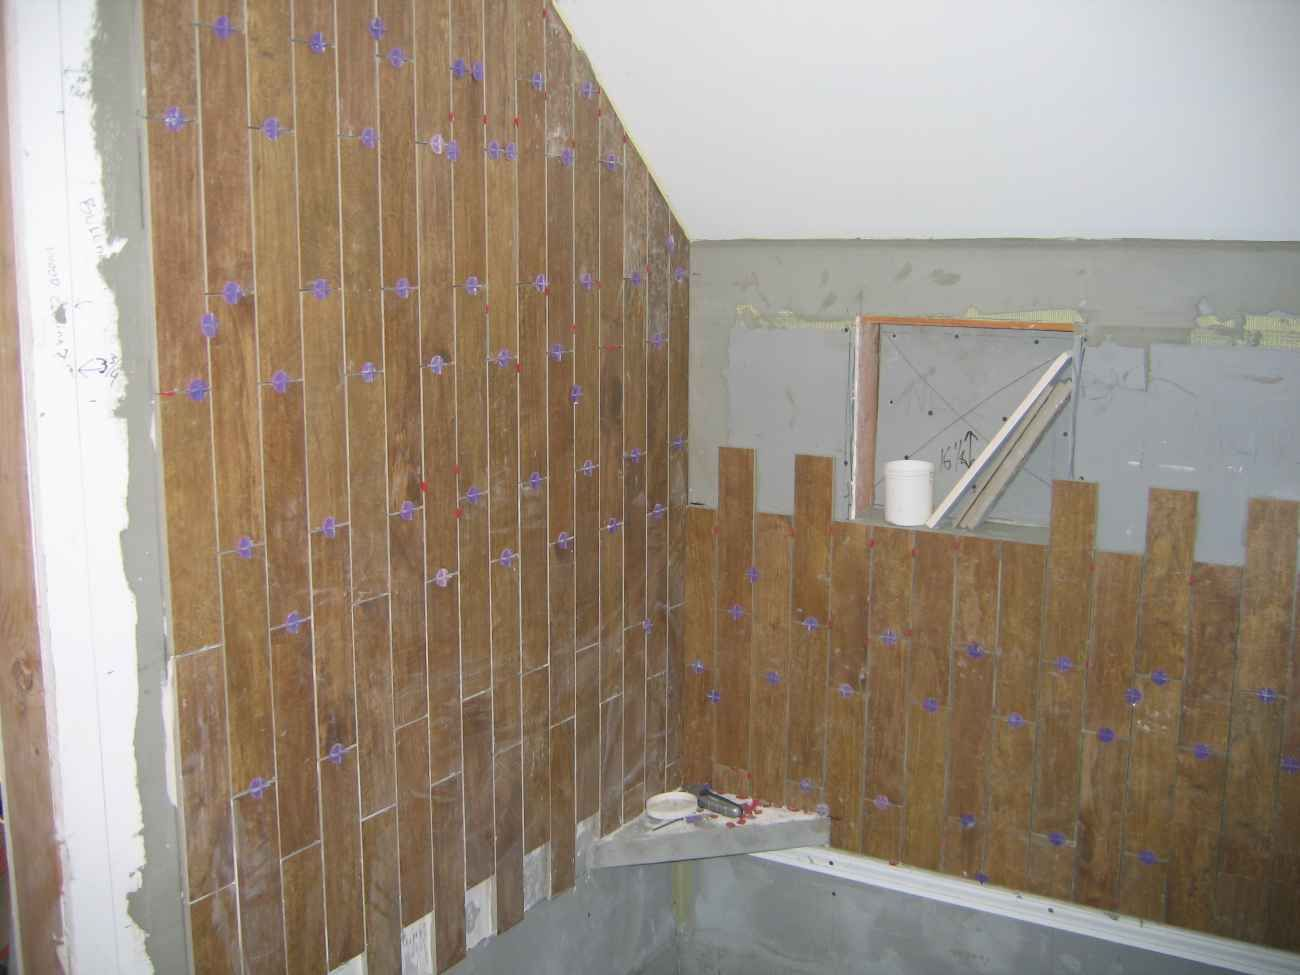 shower tile that looks like weathered wood | Simple Wood Ceramic Tile for  Bathroom Wall